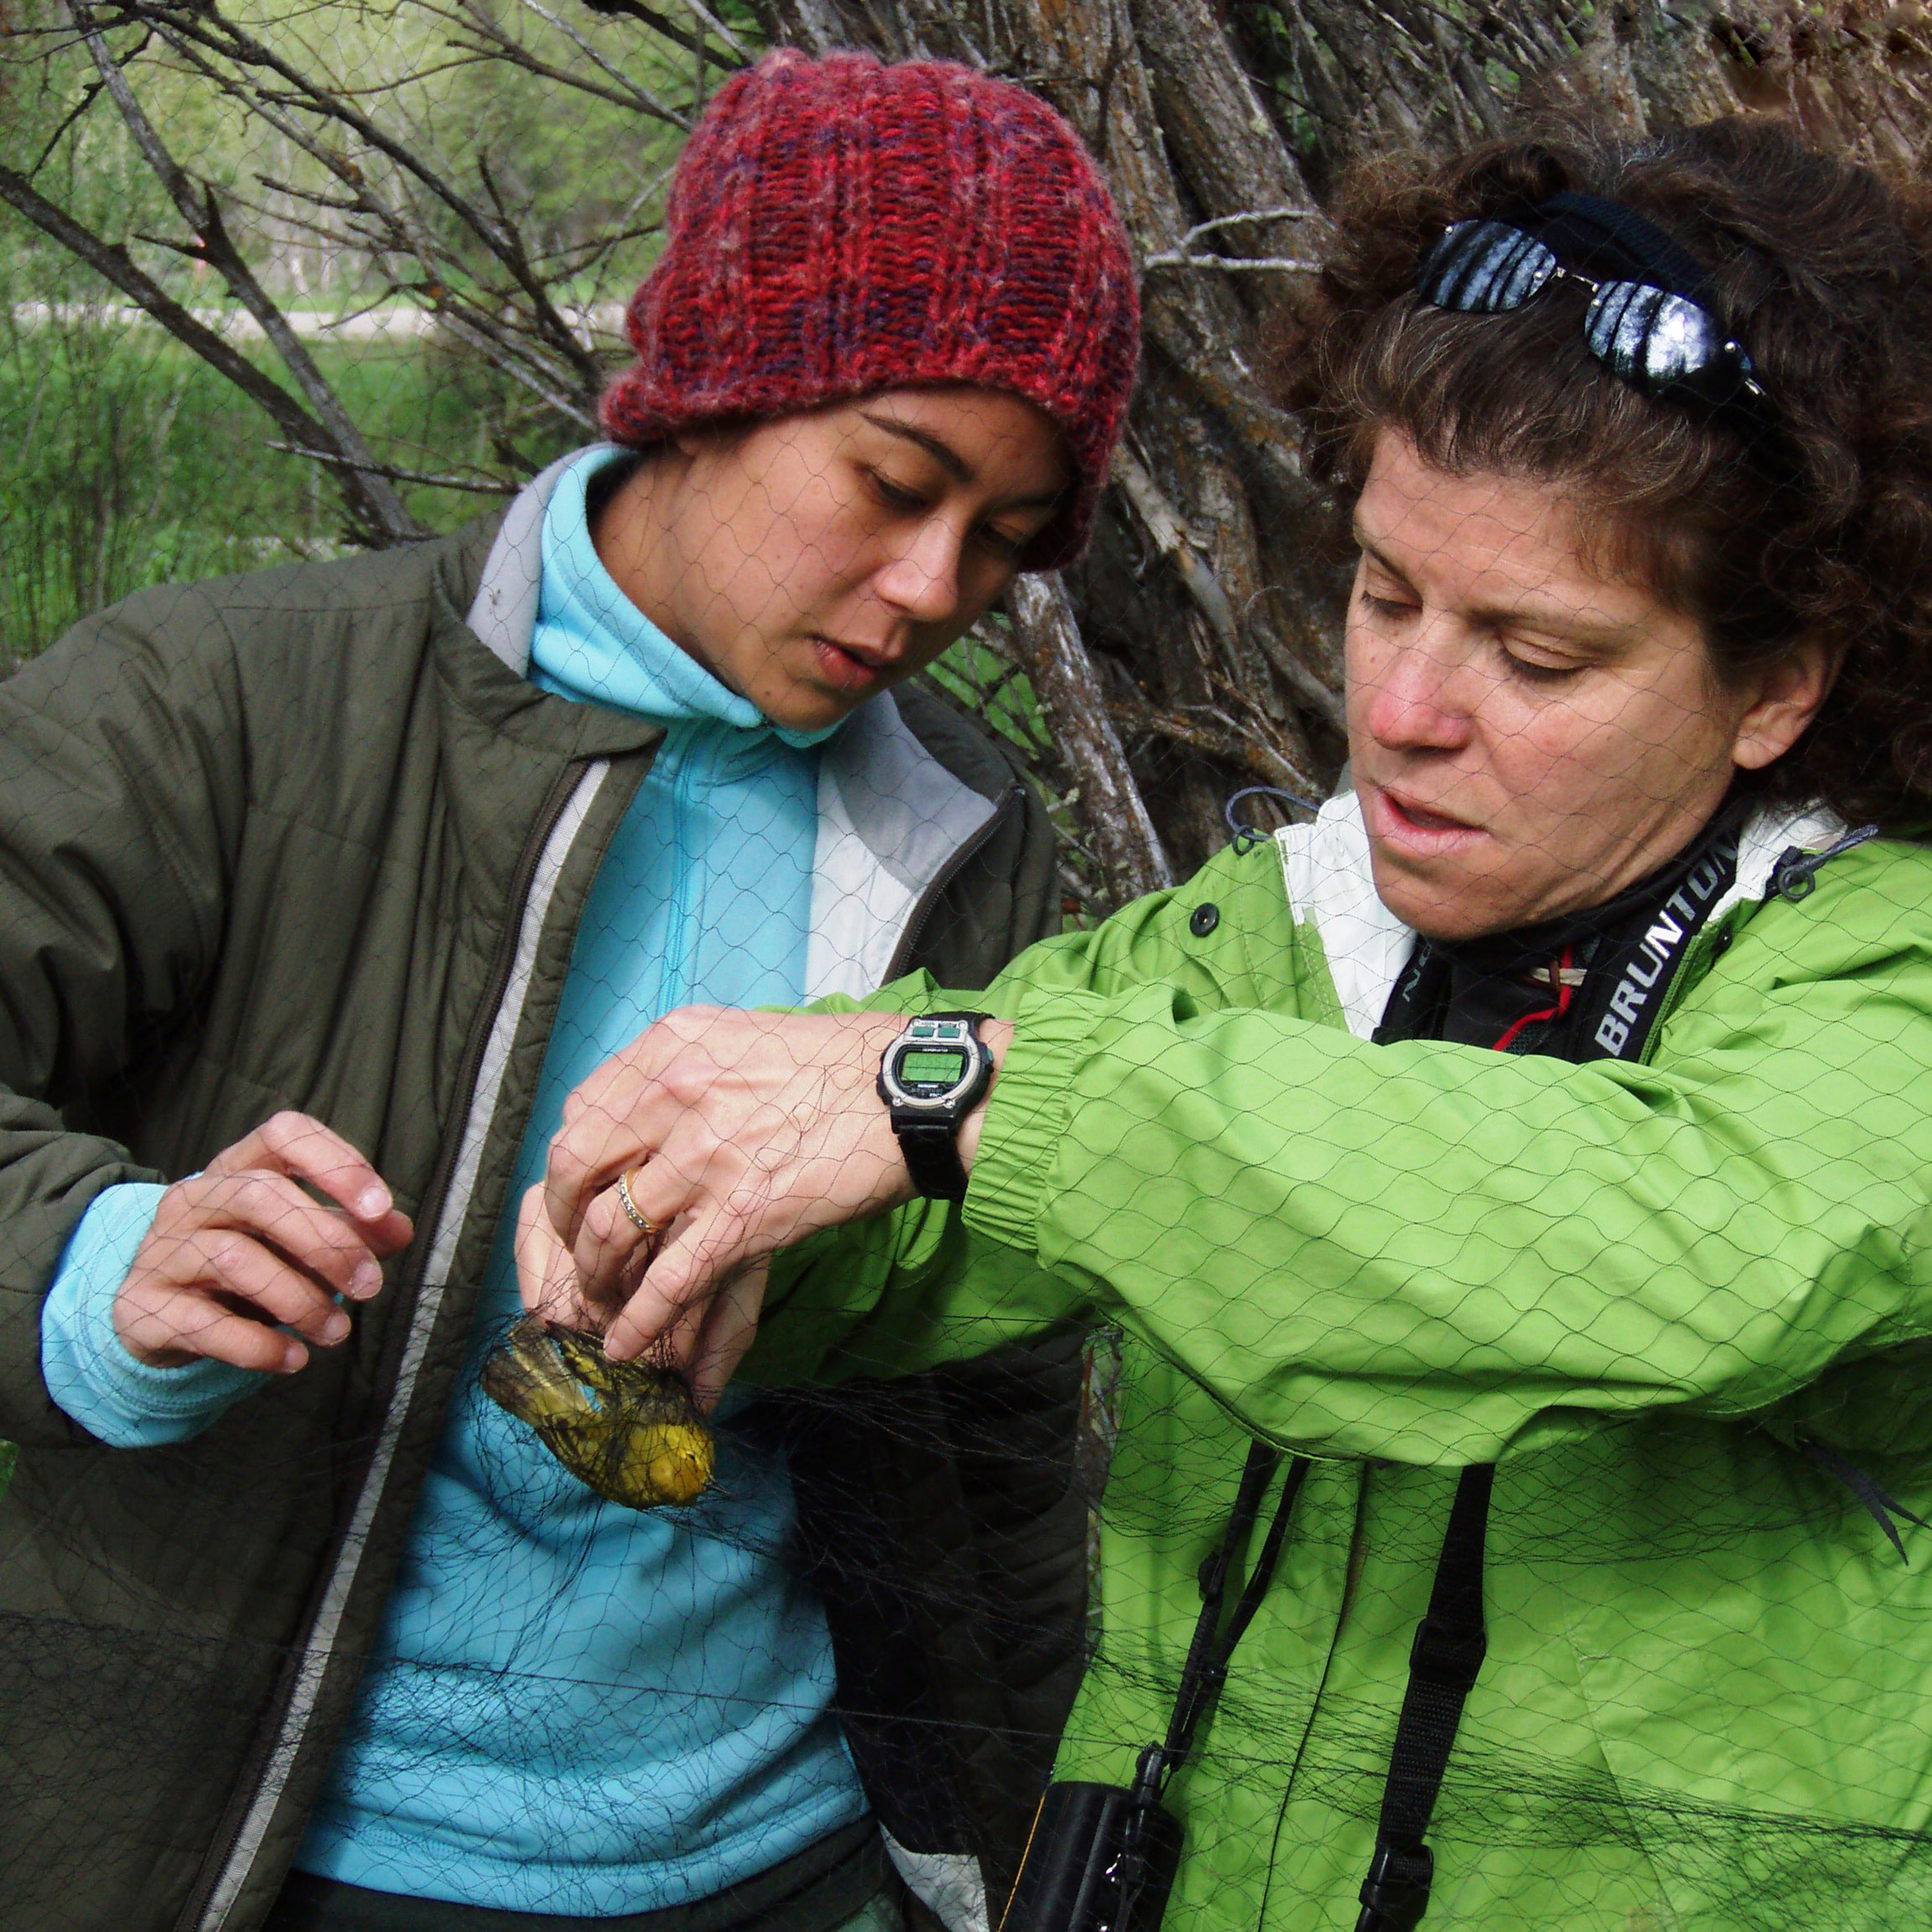 Find out how an Earthwatch expedition can help teachers, teens, and school groups connect with nature through hands-on science and cooperative conservation, or learn how to apply for one of our student or teacher fellowships.